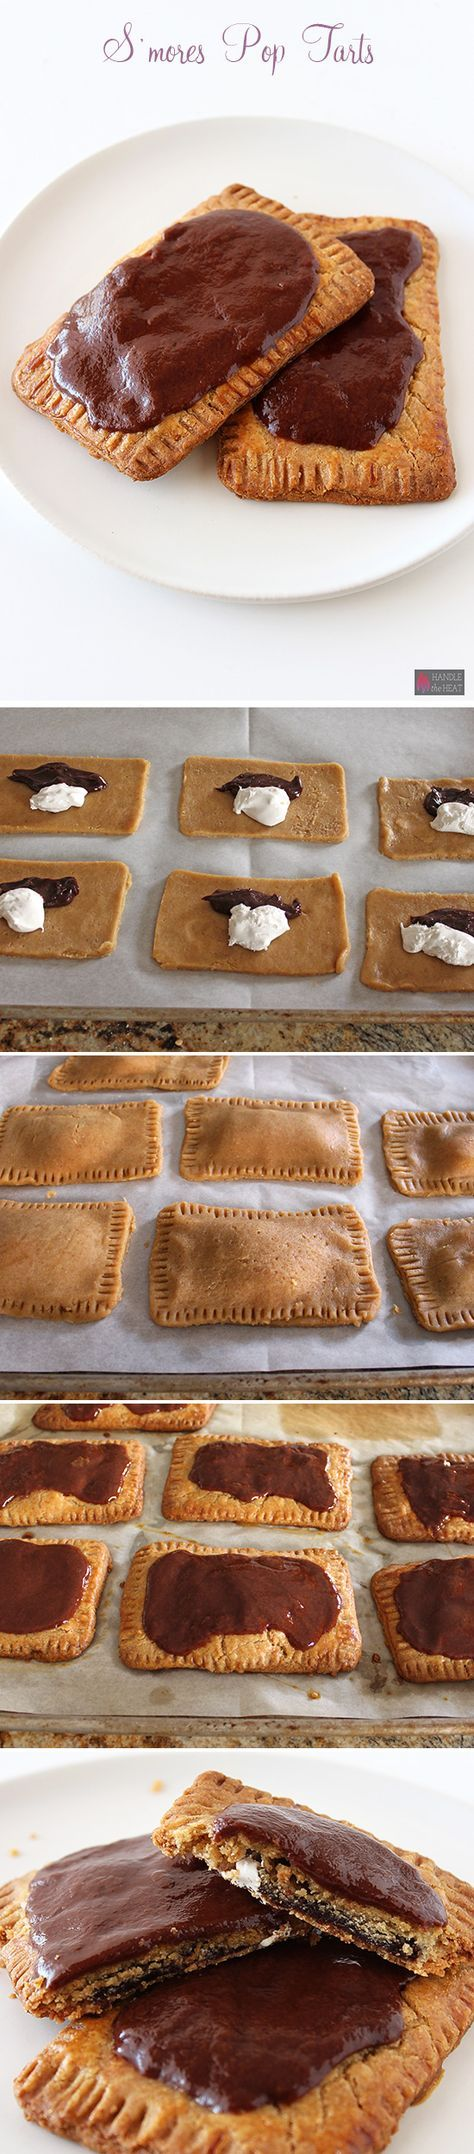 Homemade S'mores Pop Tarts - Amazing! SO much better than store-bought!